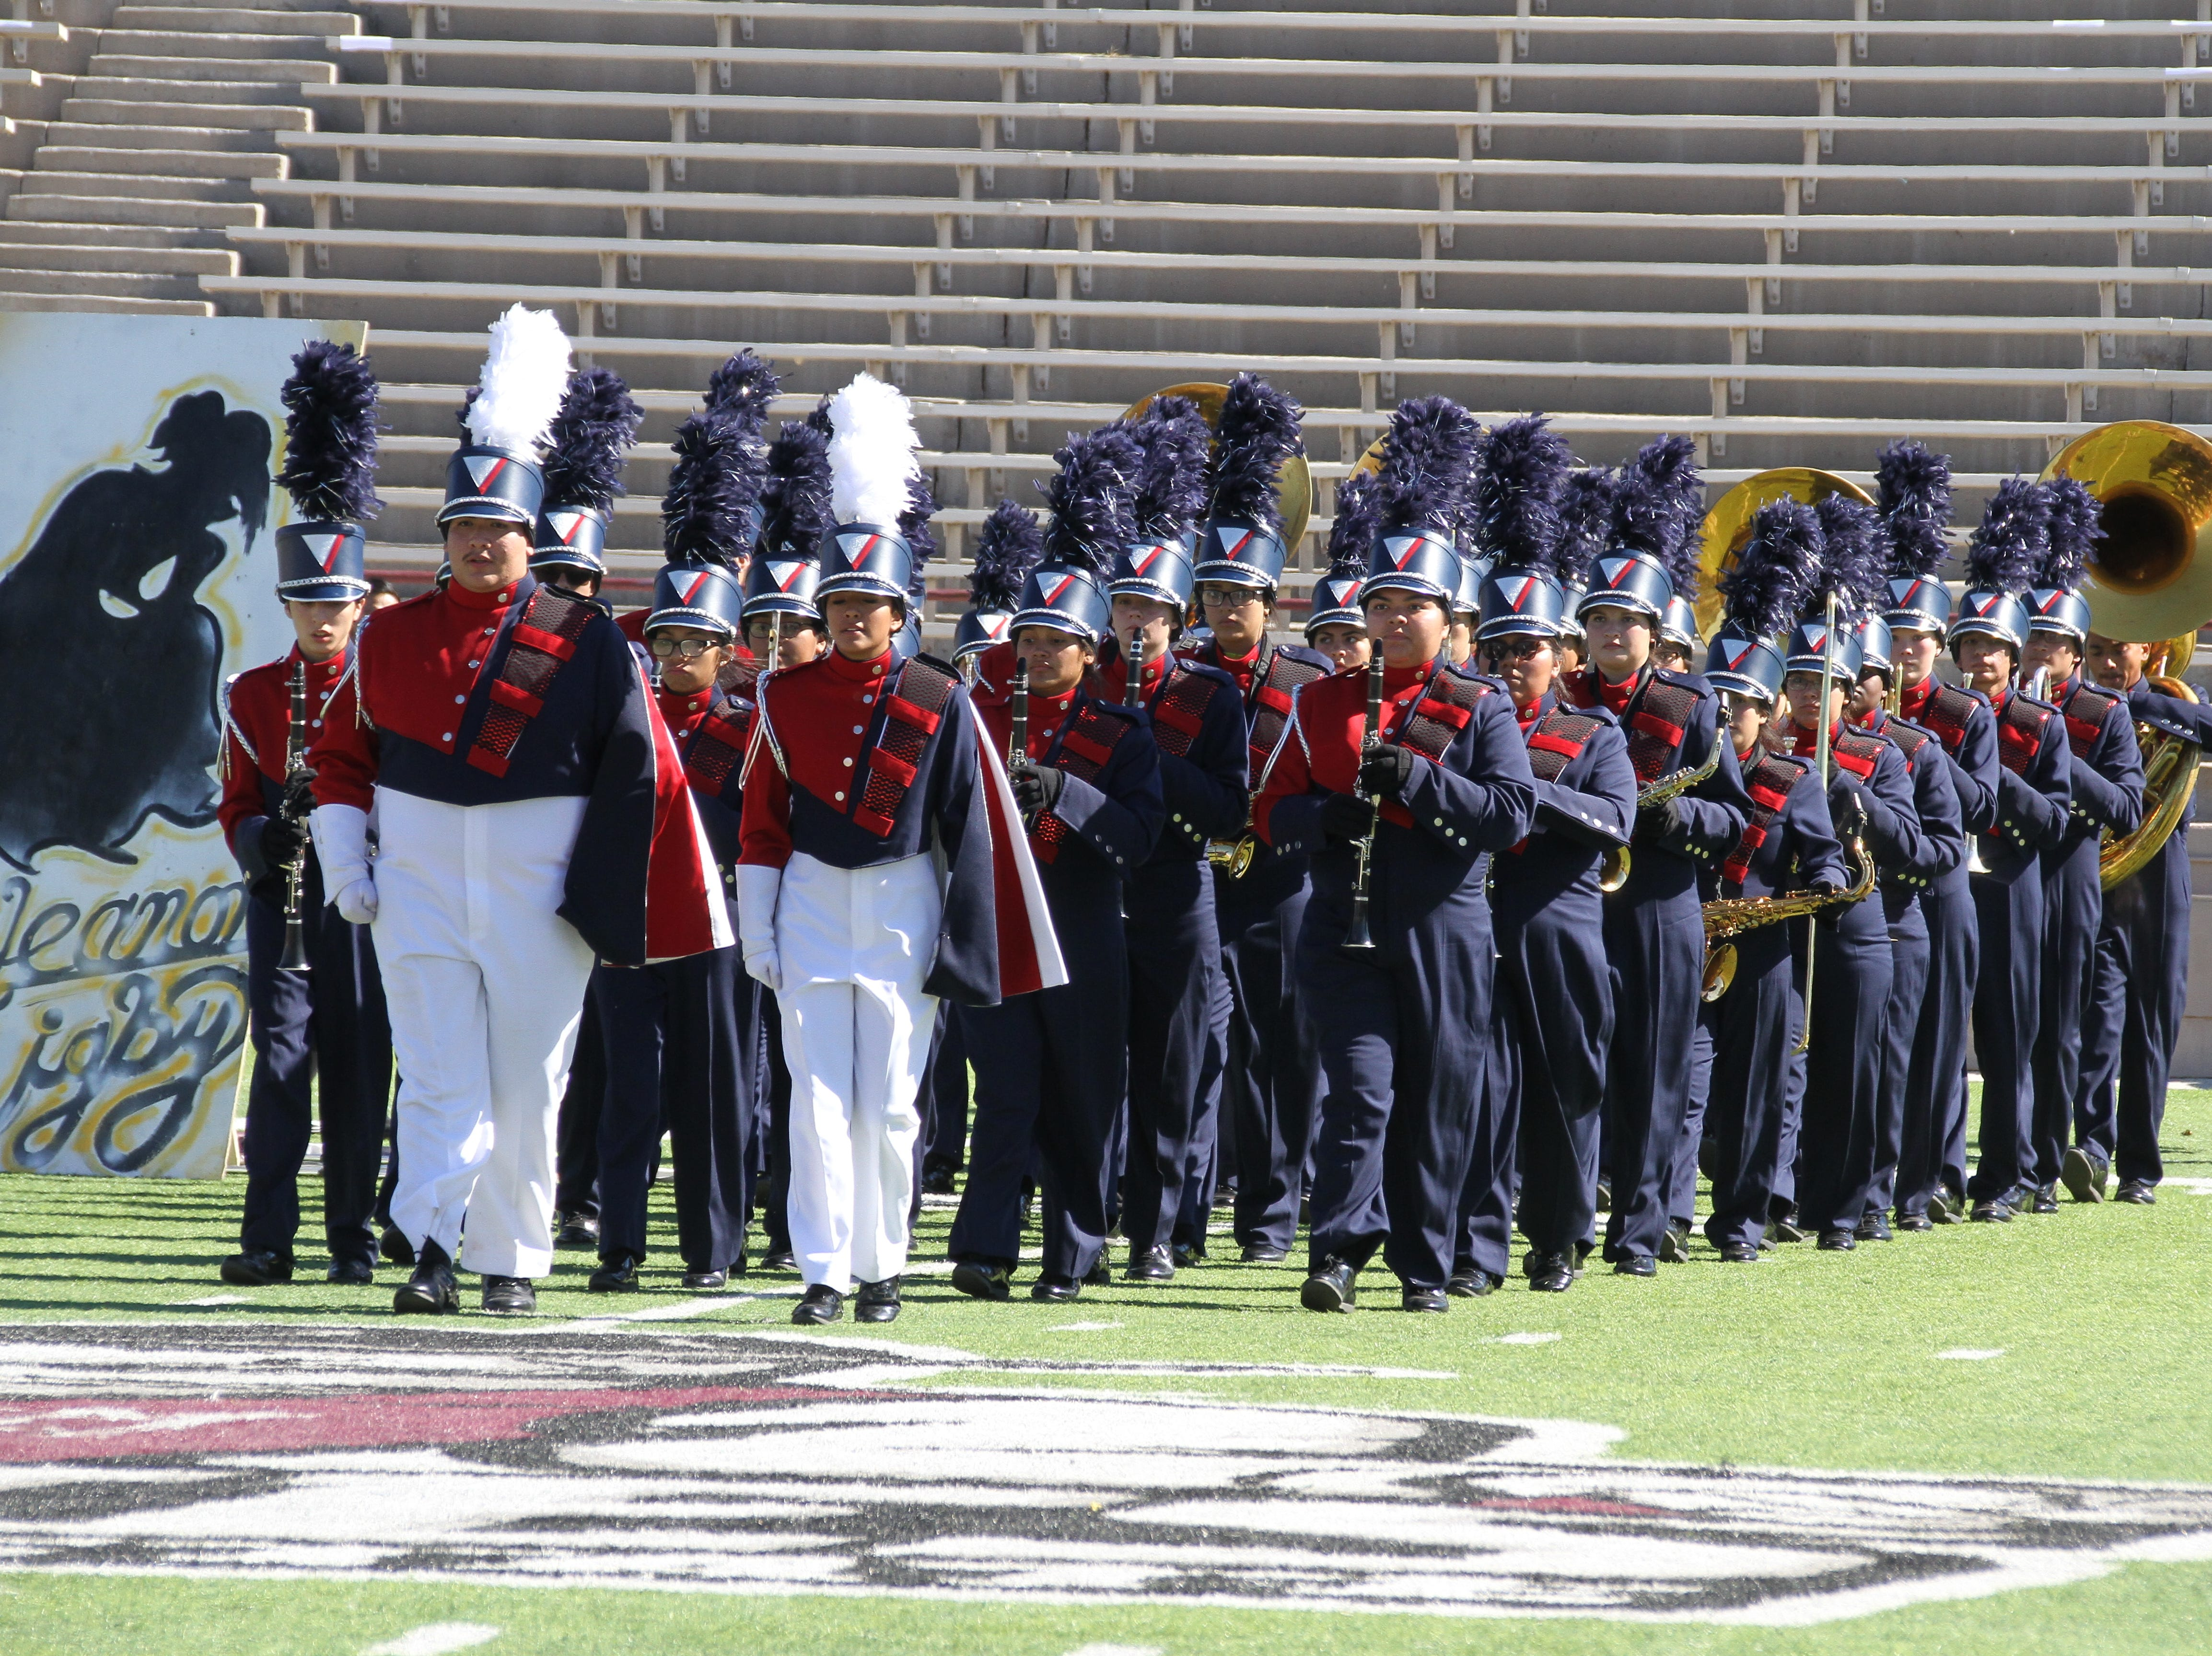 A thin blue line takes the field.